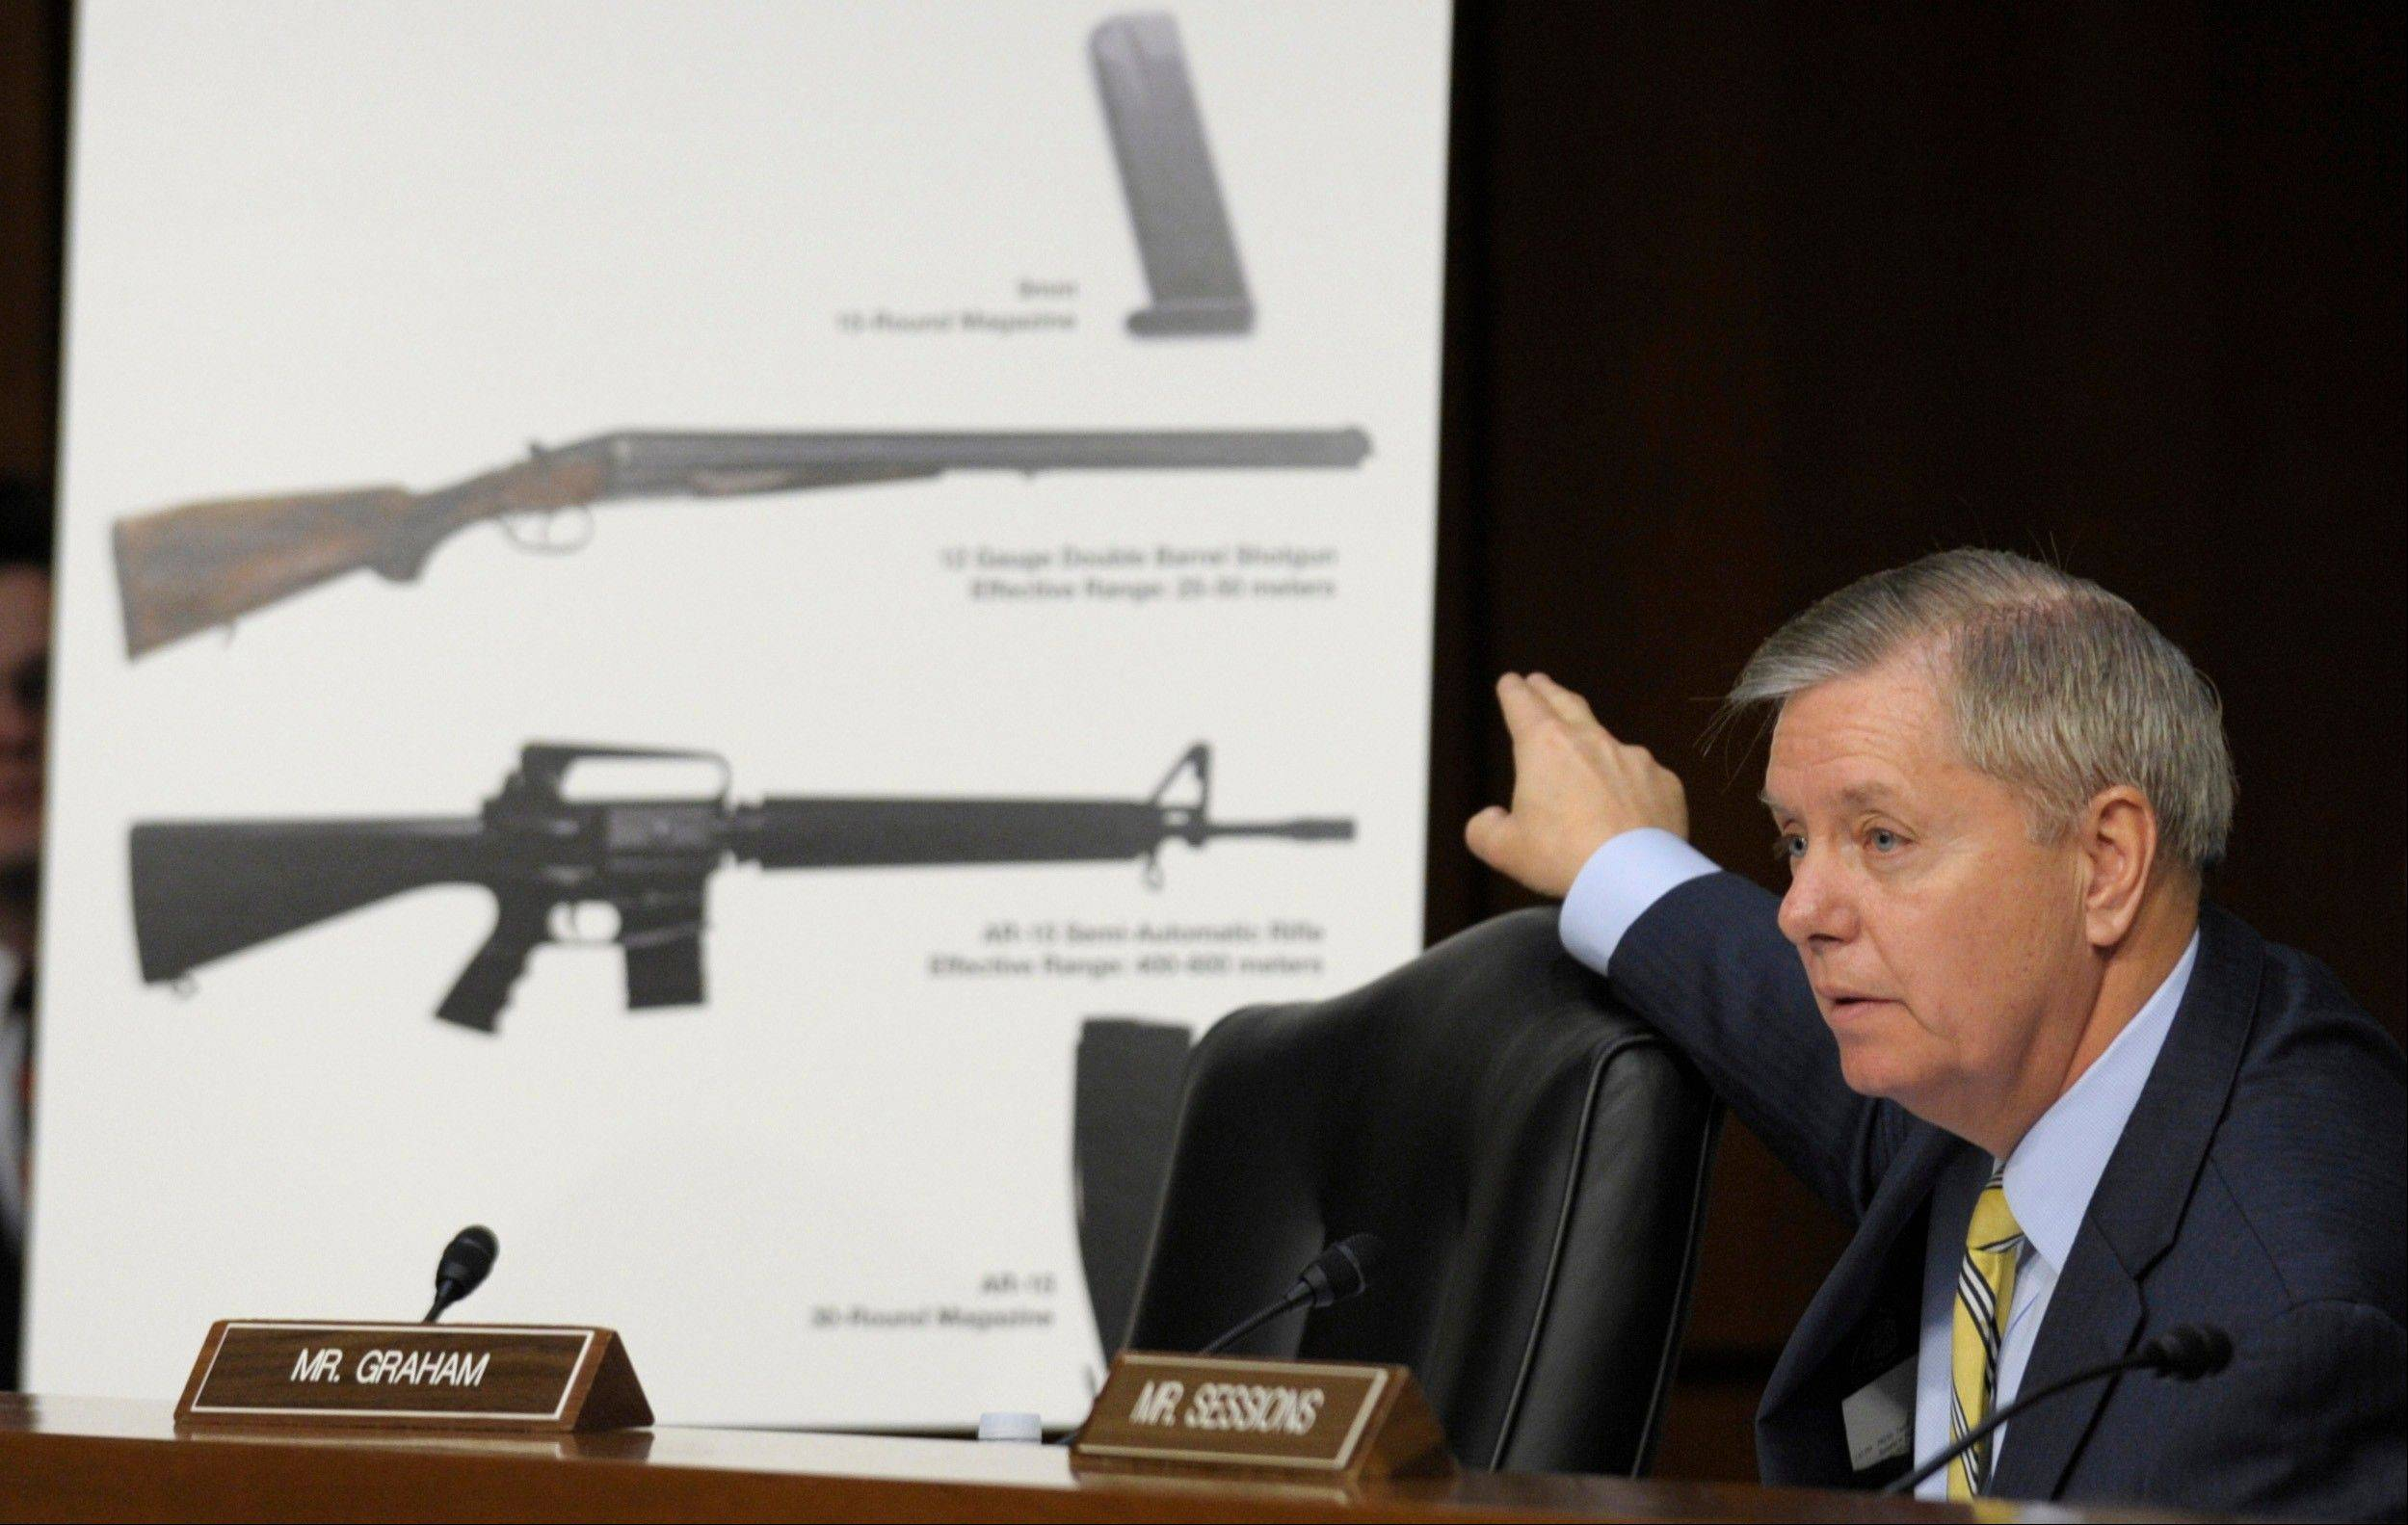 Senate Judiciary Committee member Sen. Lindsey Graham, a South Carolina Republican, talks about gun legislation during the committee's hearing on Capitol Hill last January. Senators could start debating Democratic-written gun legislation before week's end.